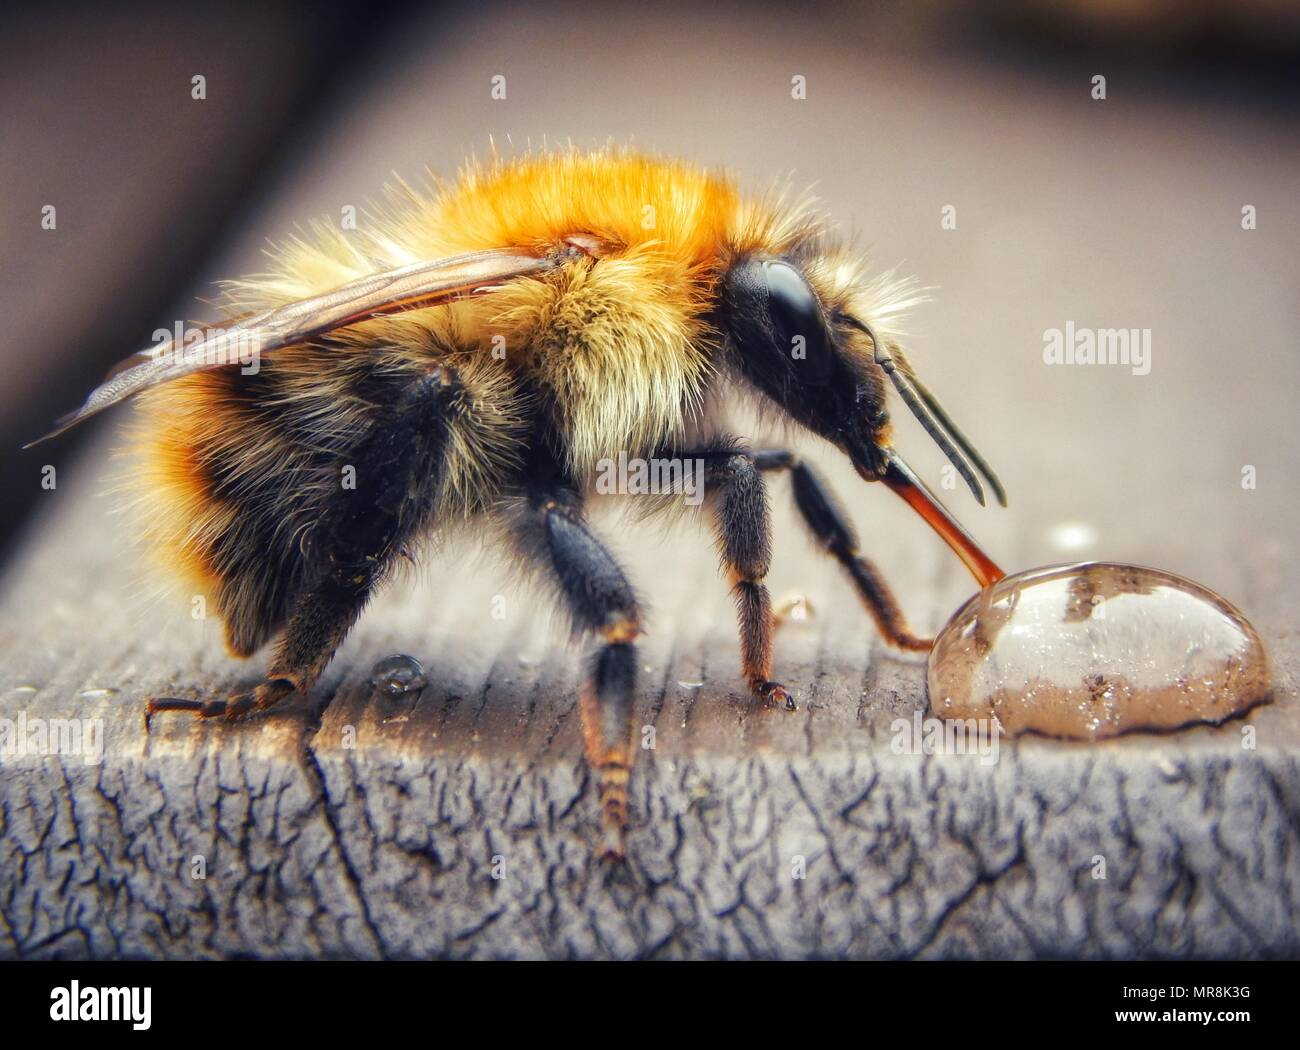 Common carder bee drinking a drop of sugar water close up - Stock Image